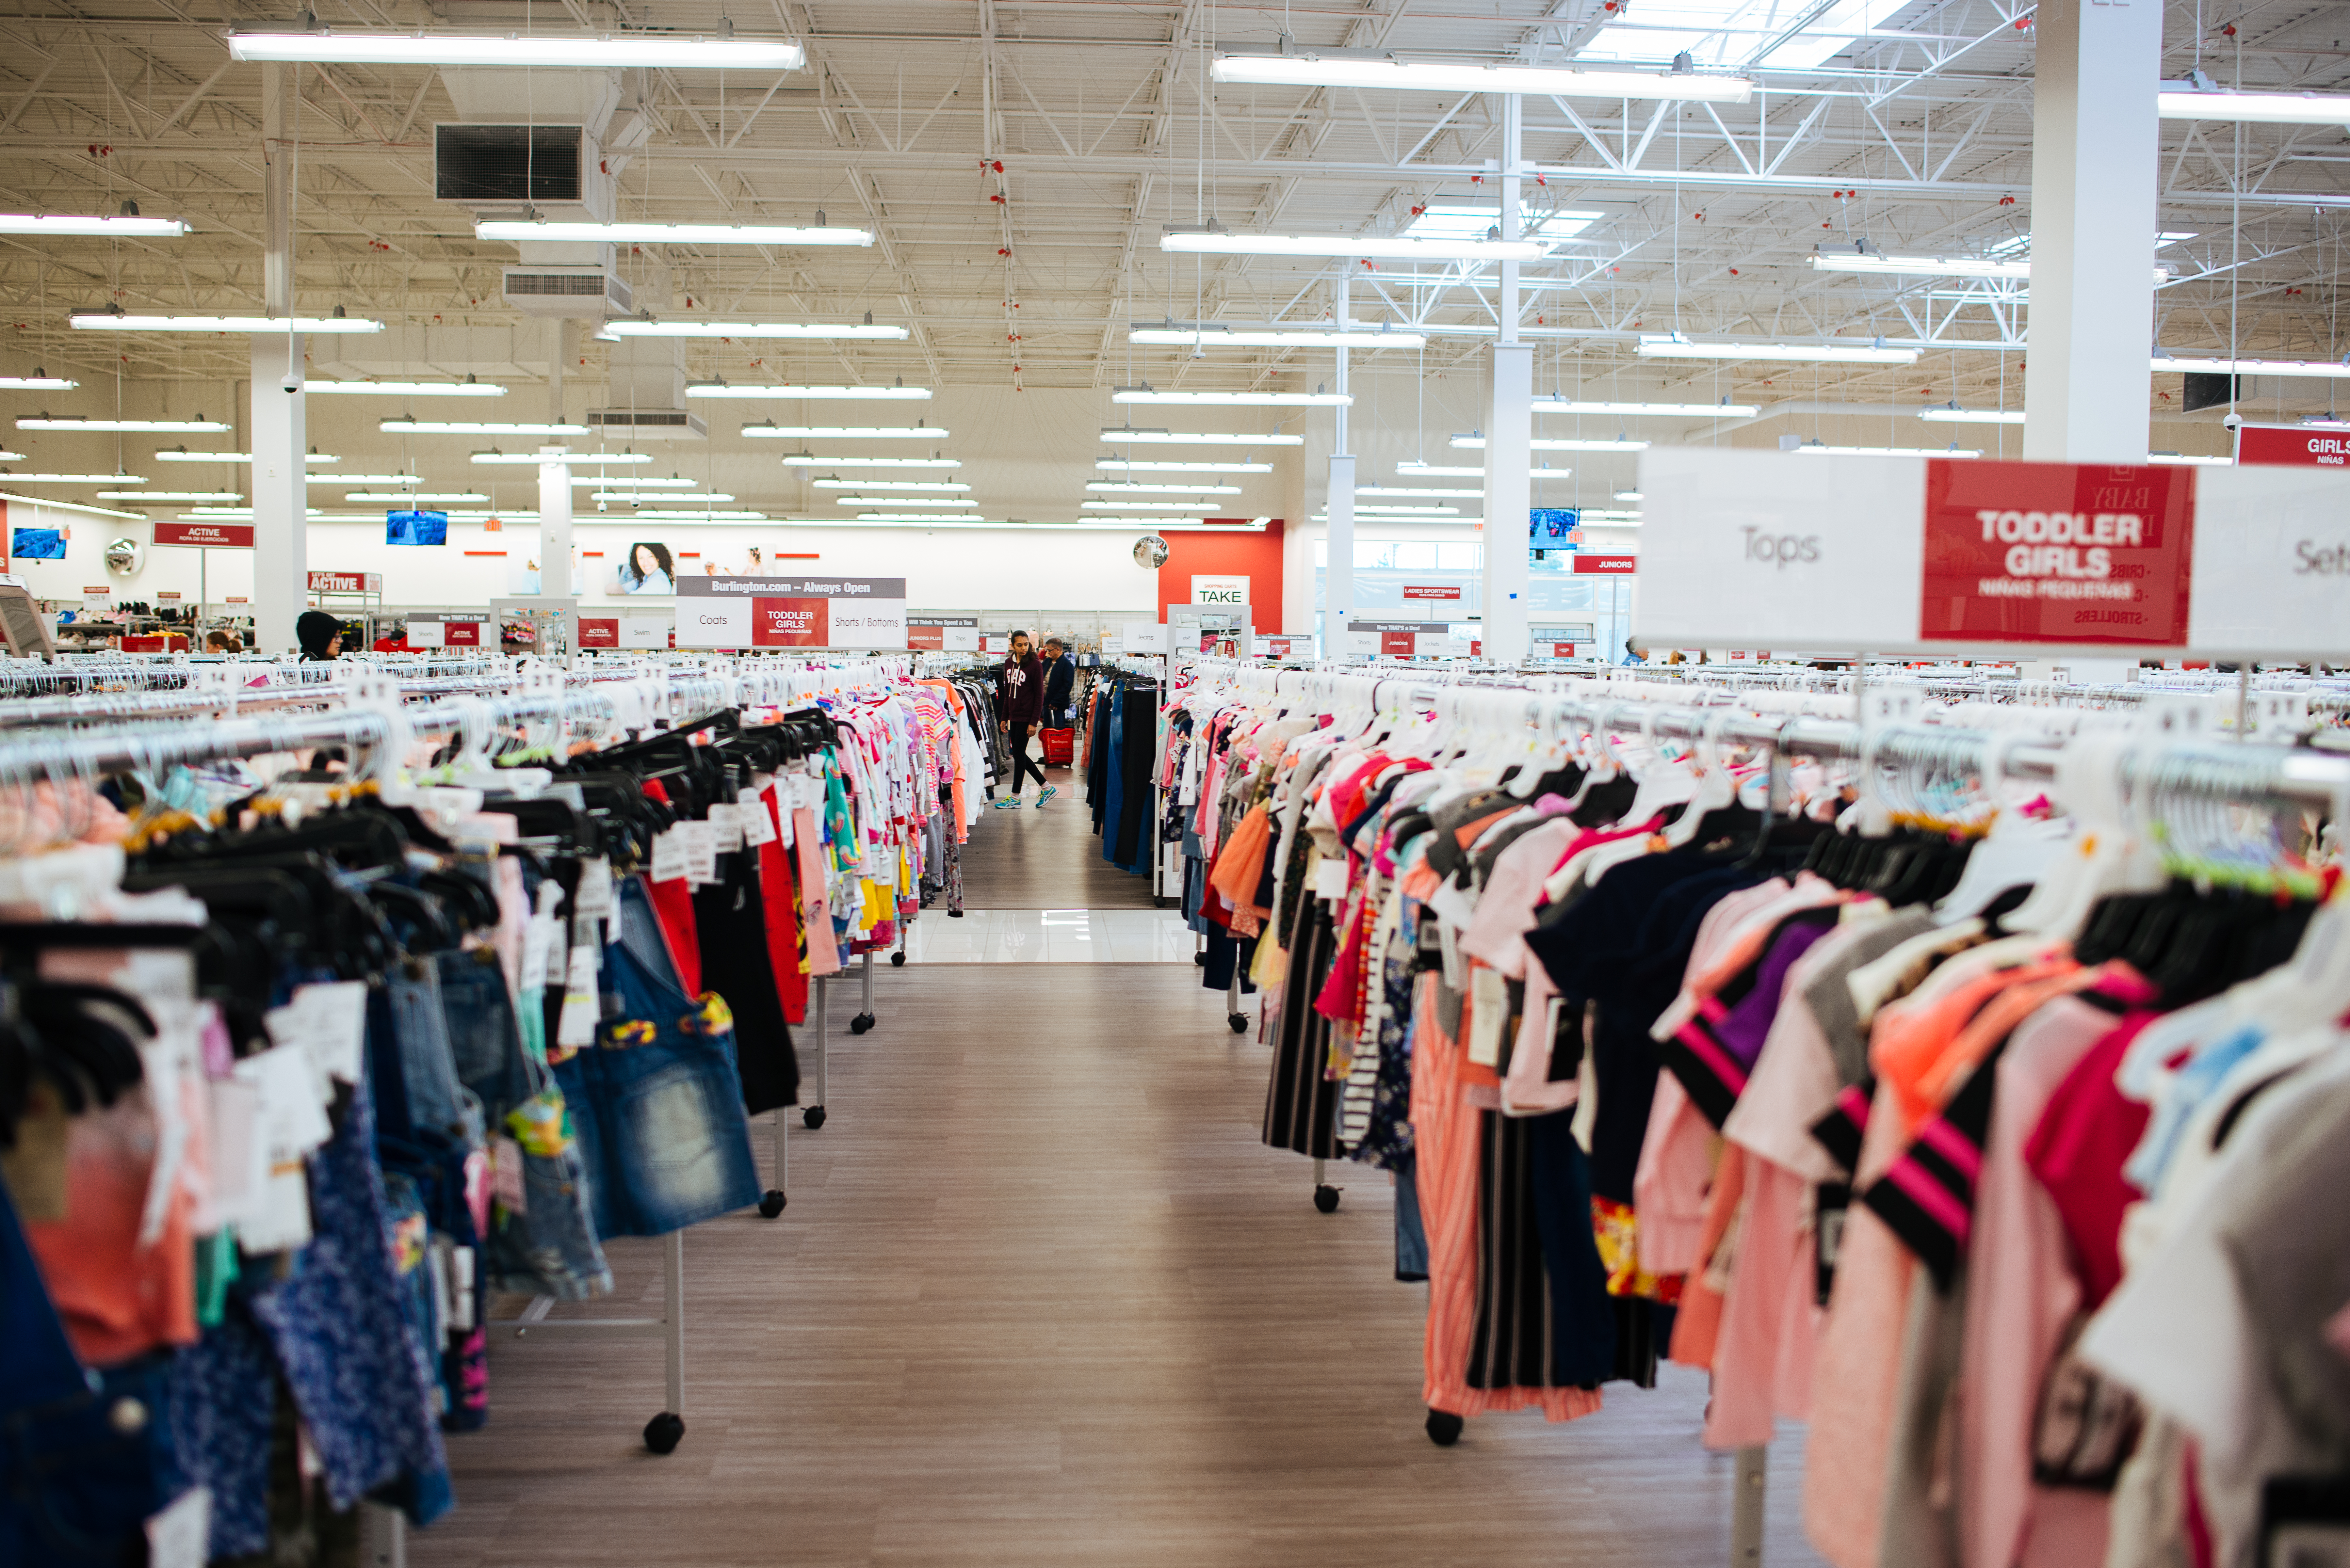 Aisles of clothes inside Burlington.